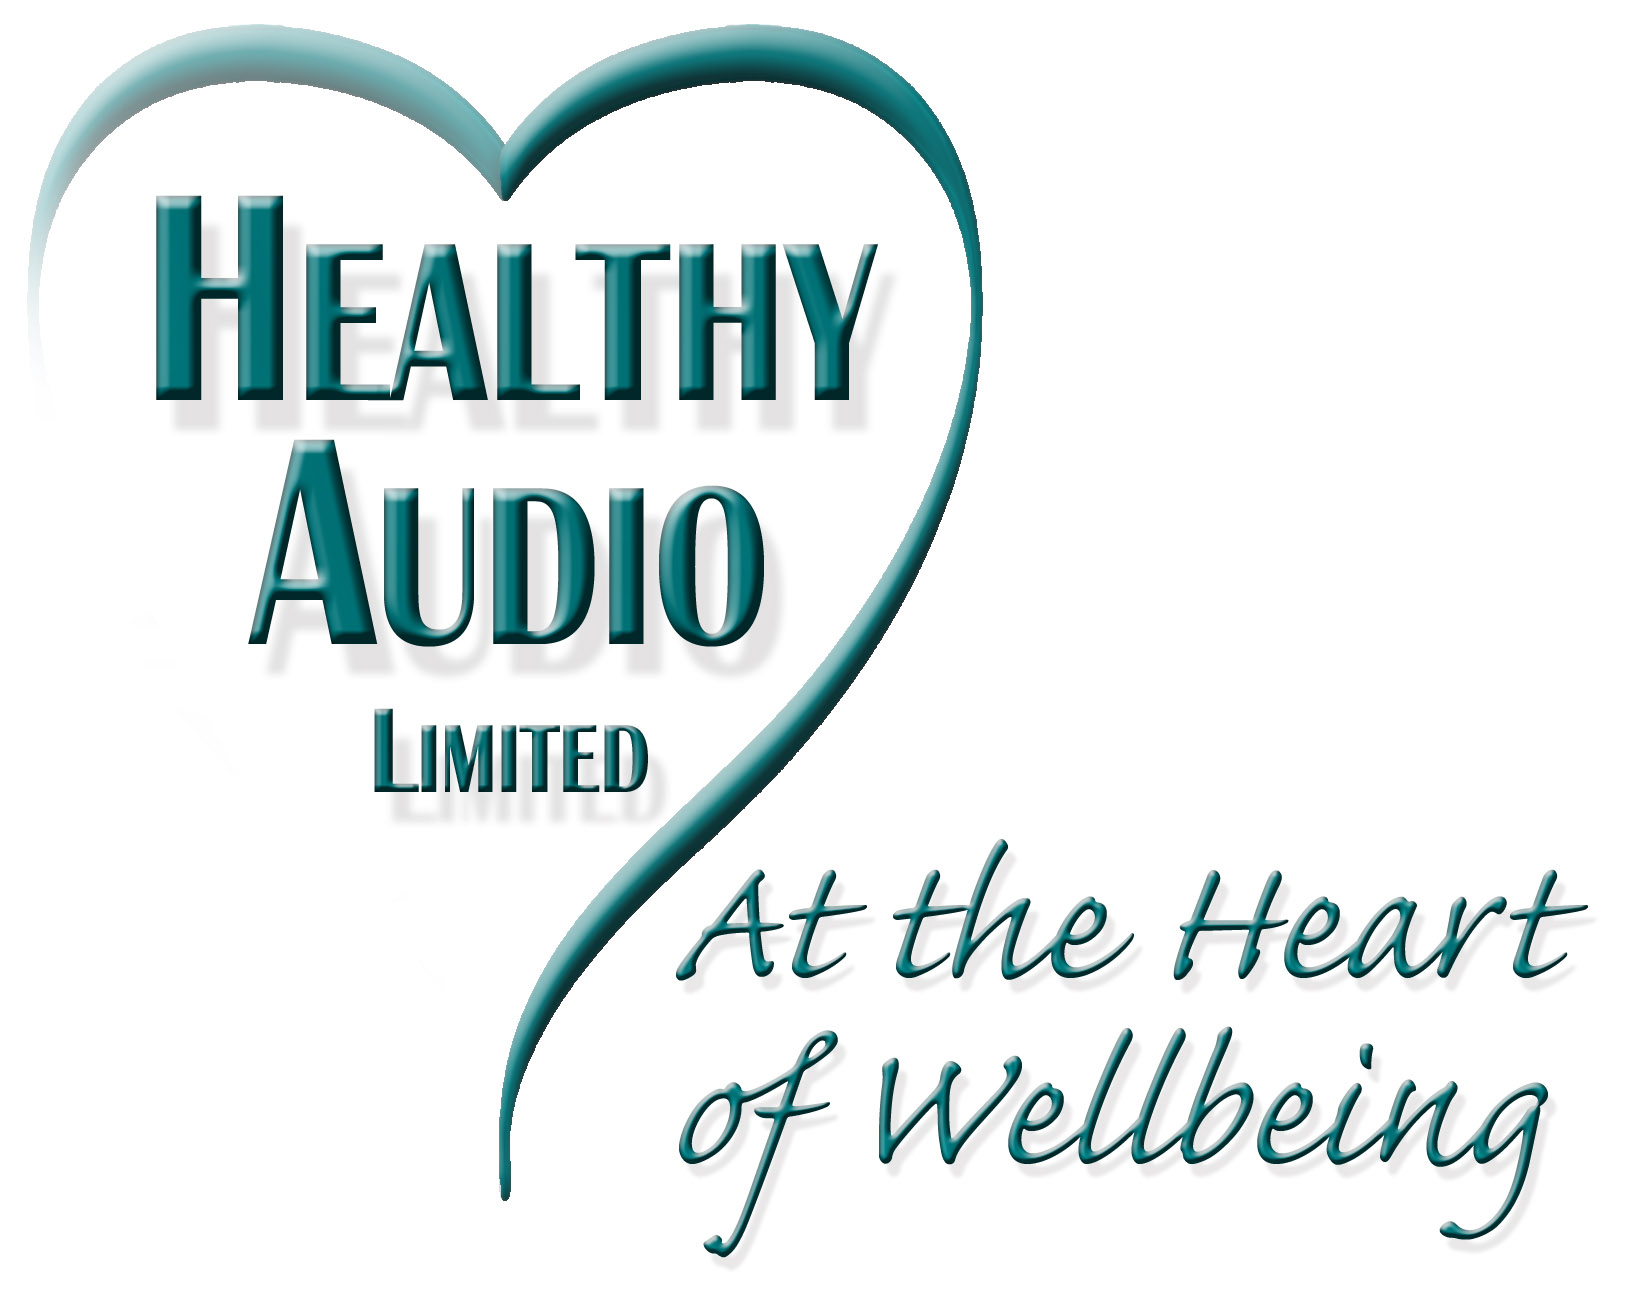 Healthy Audio Limited